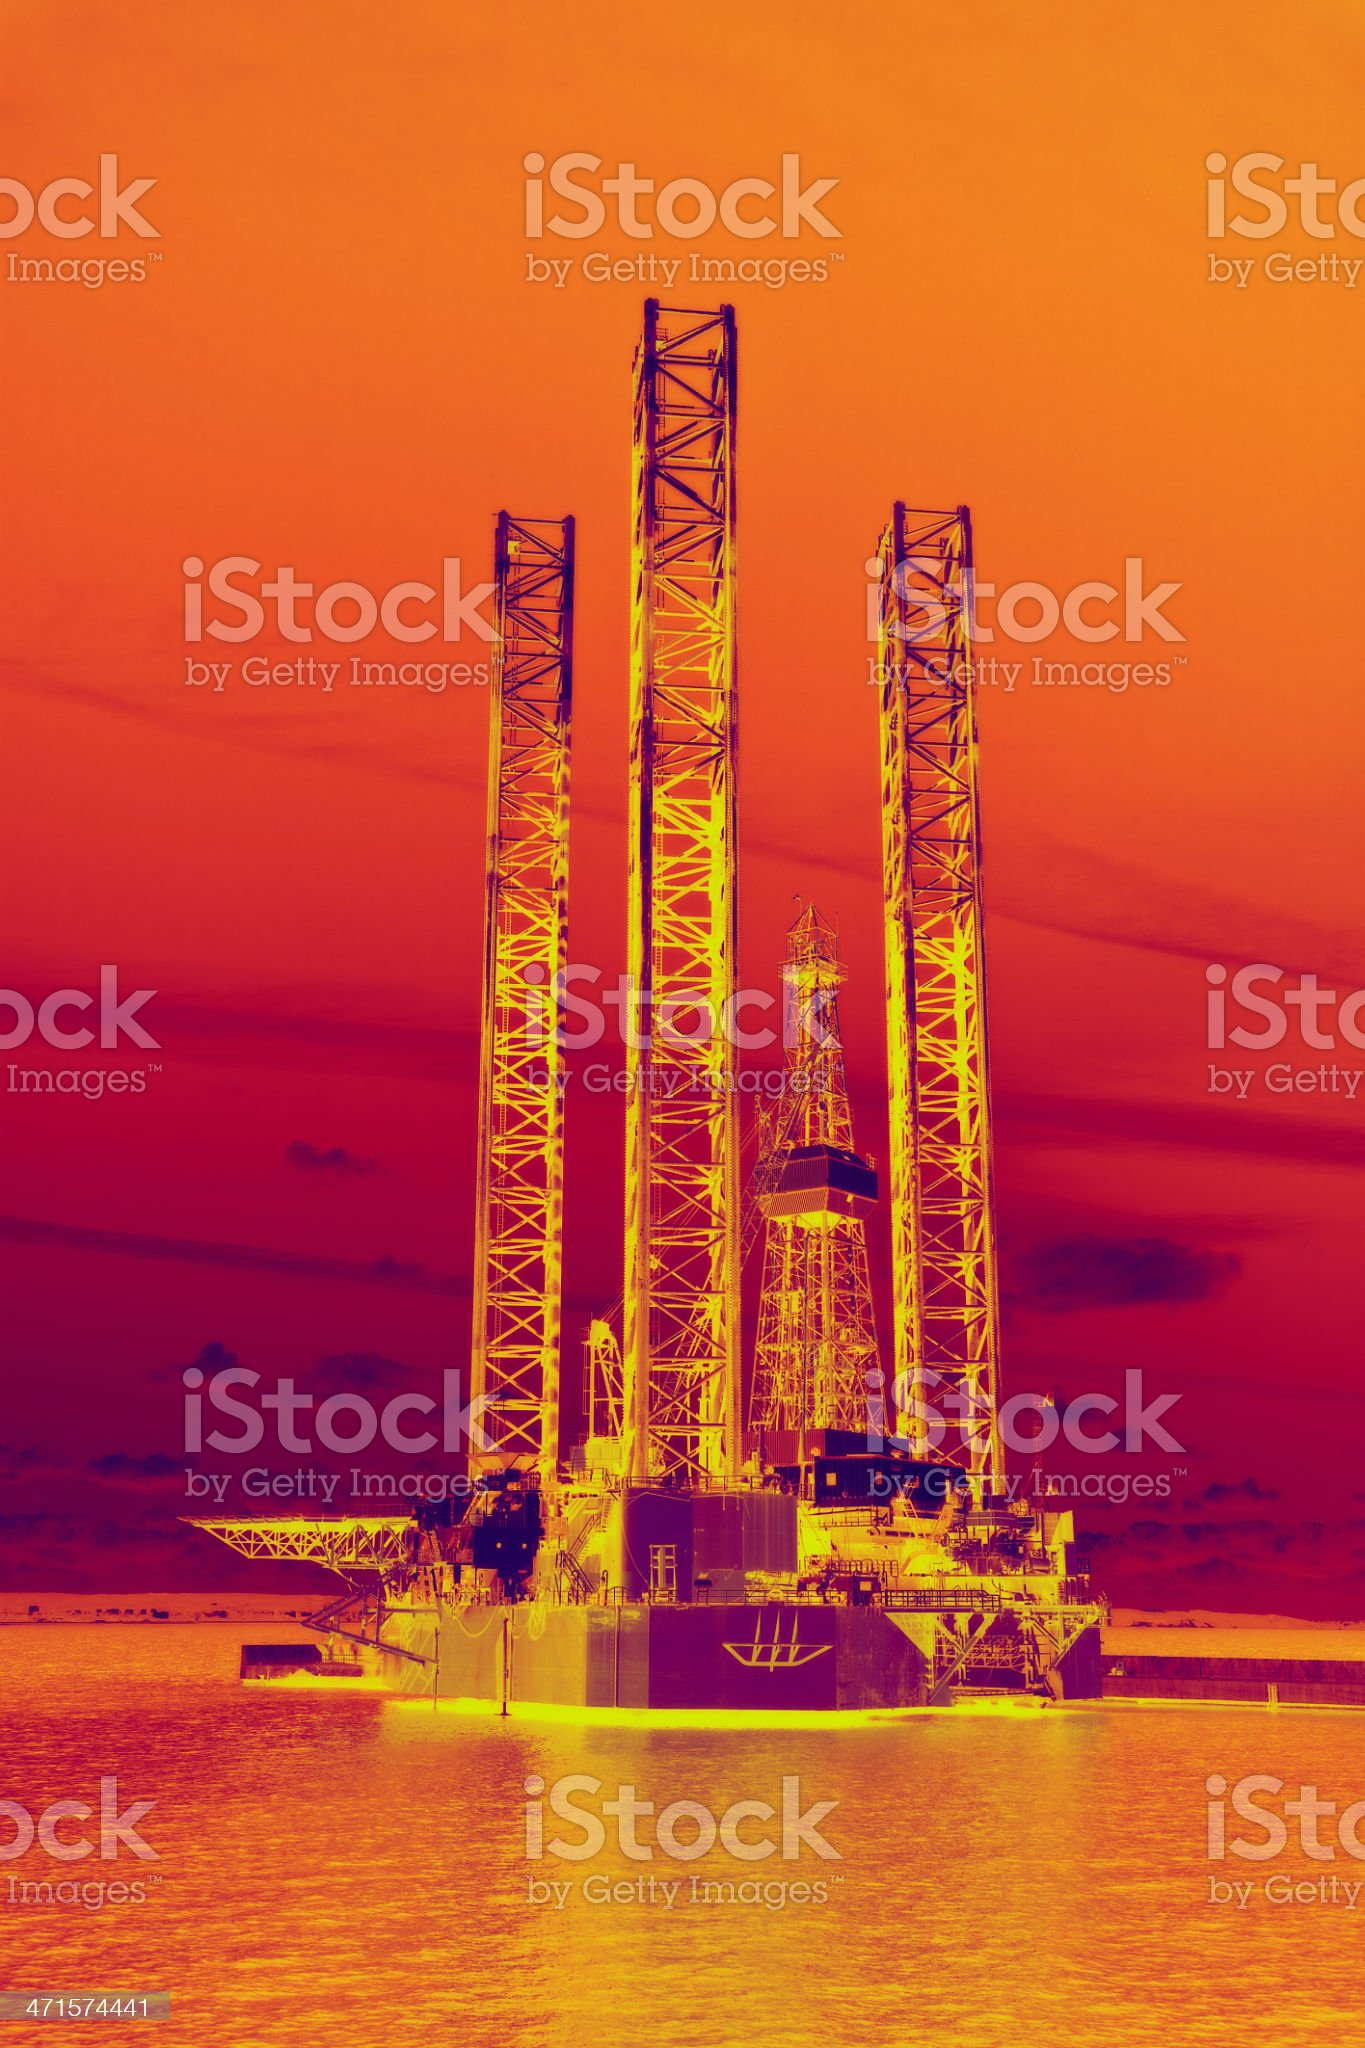 Drilling for Oil at Sunset royalty-free stock photo